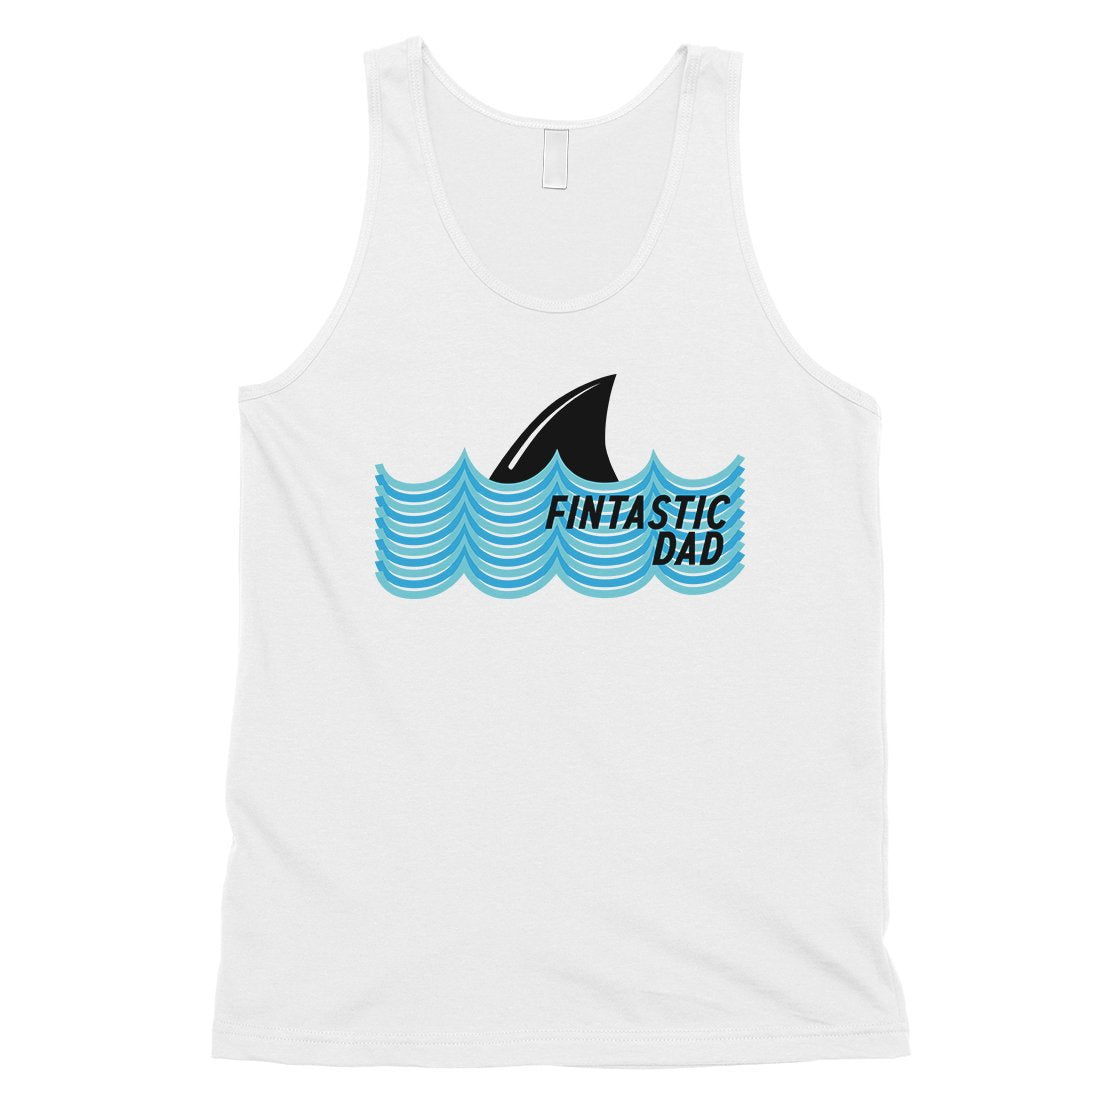 Fintastic Dad Mens Sleeveless Top